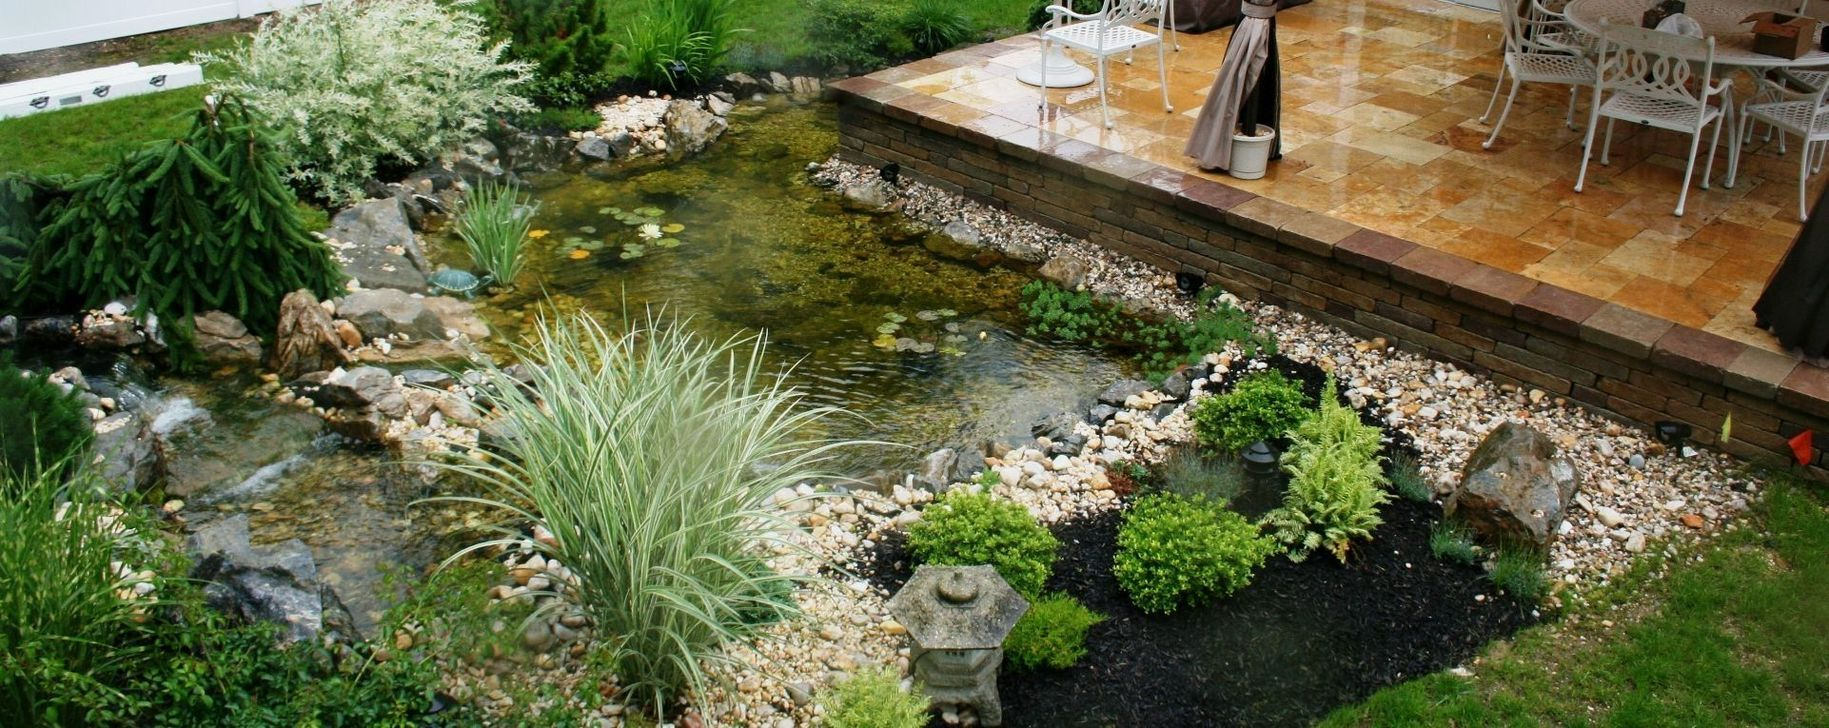 Cool Fish Pond Garden Landscaping Ideas For Backyard 37